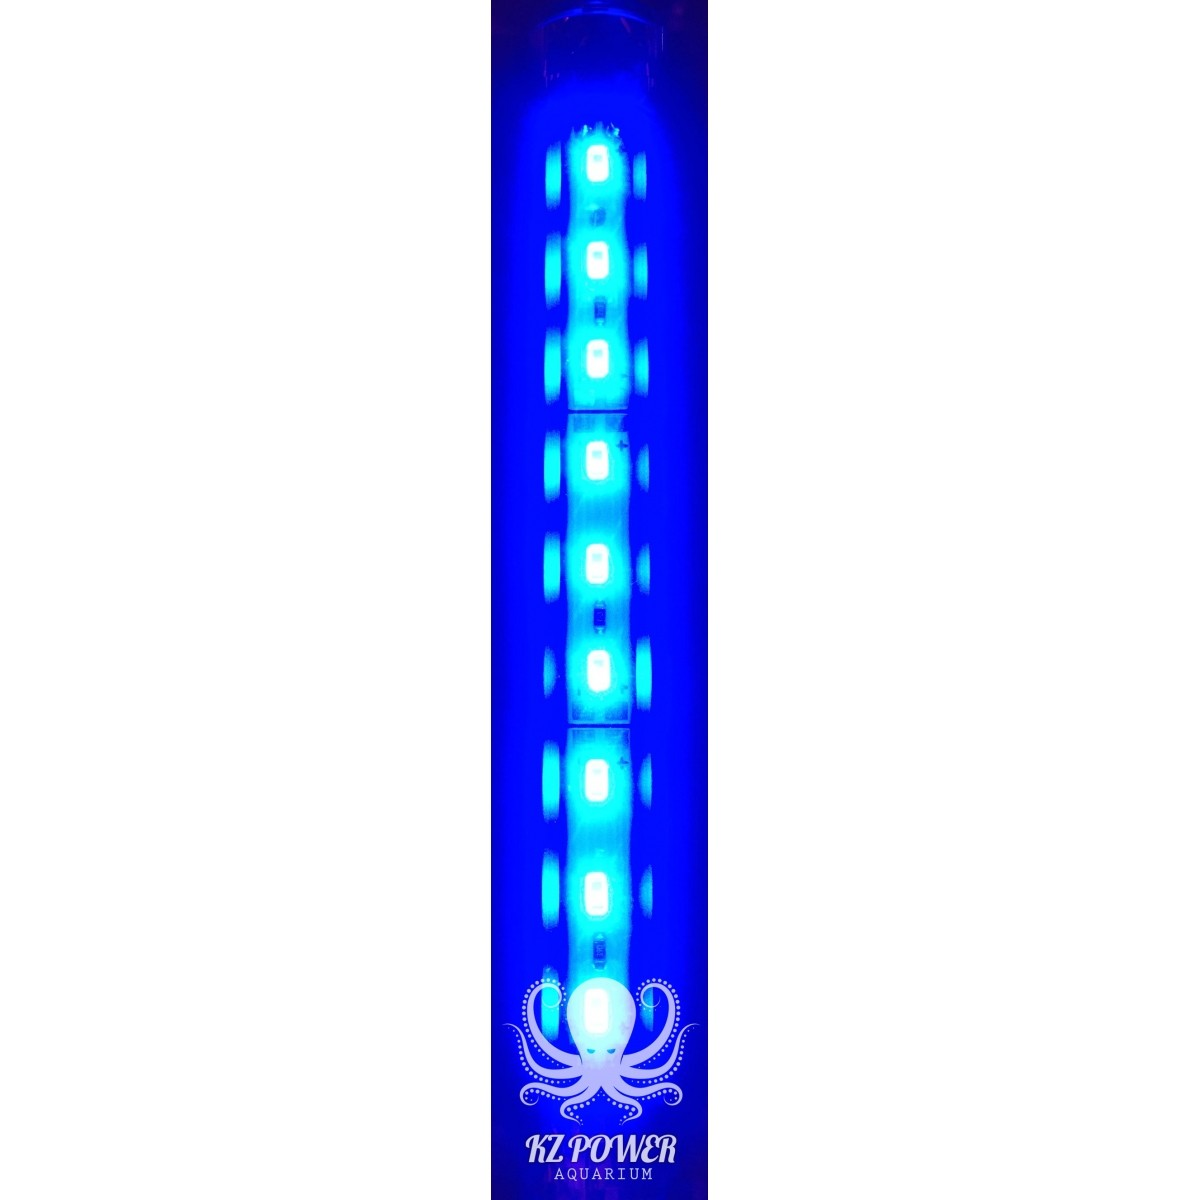 Luminaria Led Aqualumi Azul 30cm + Fonte Bivolt  - KZ Power